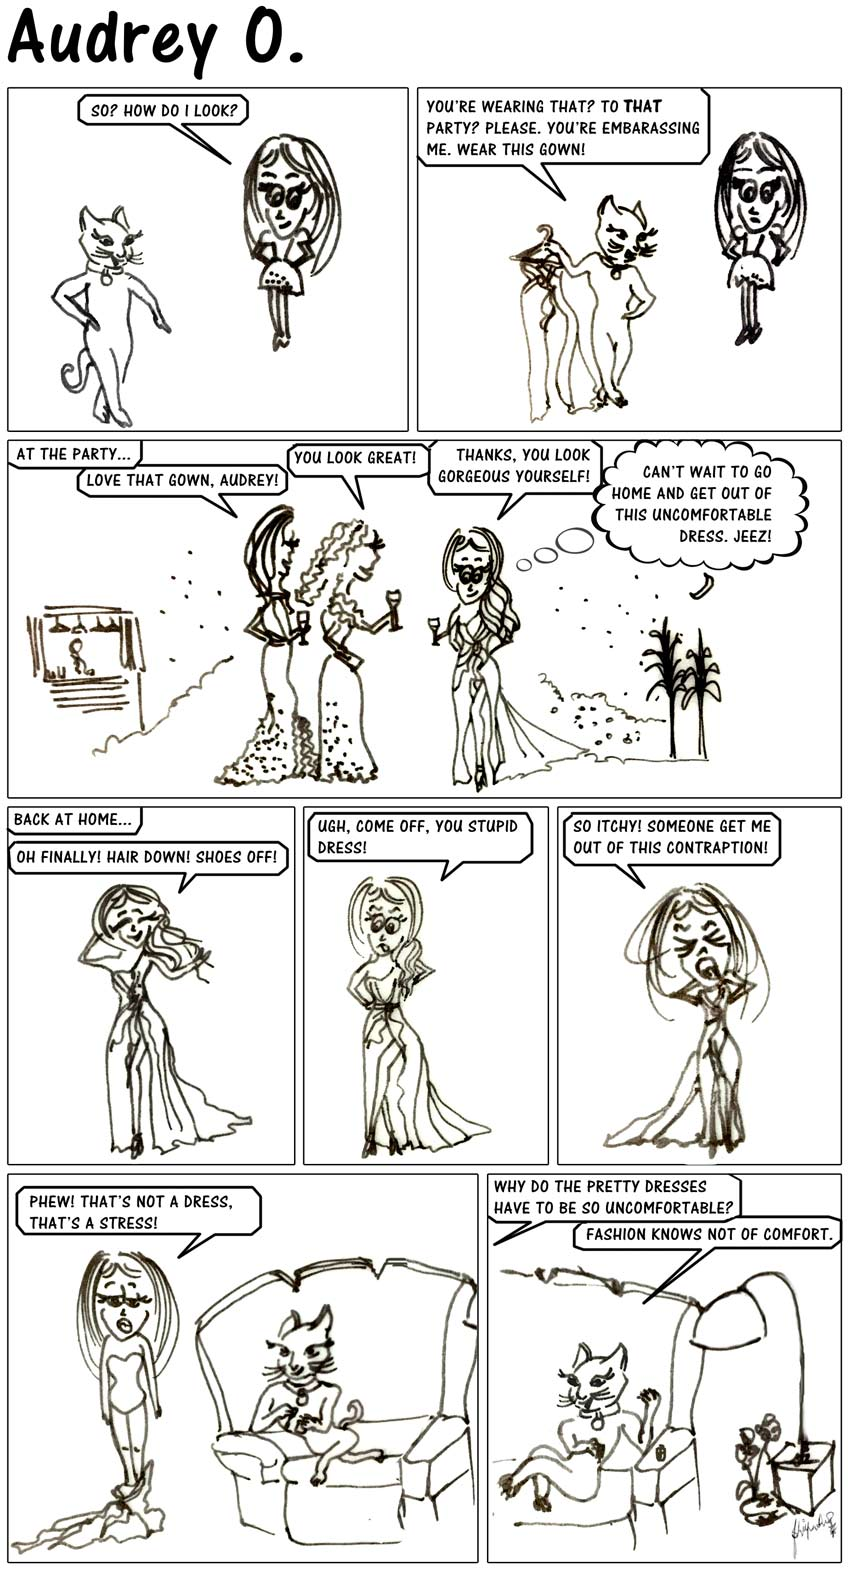 audrey-o-comics-v1e8-fashion-pretty-gown-designer-uncomfortable-itchy-dress-quotes-comic-girl-cartoon-coco